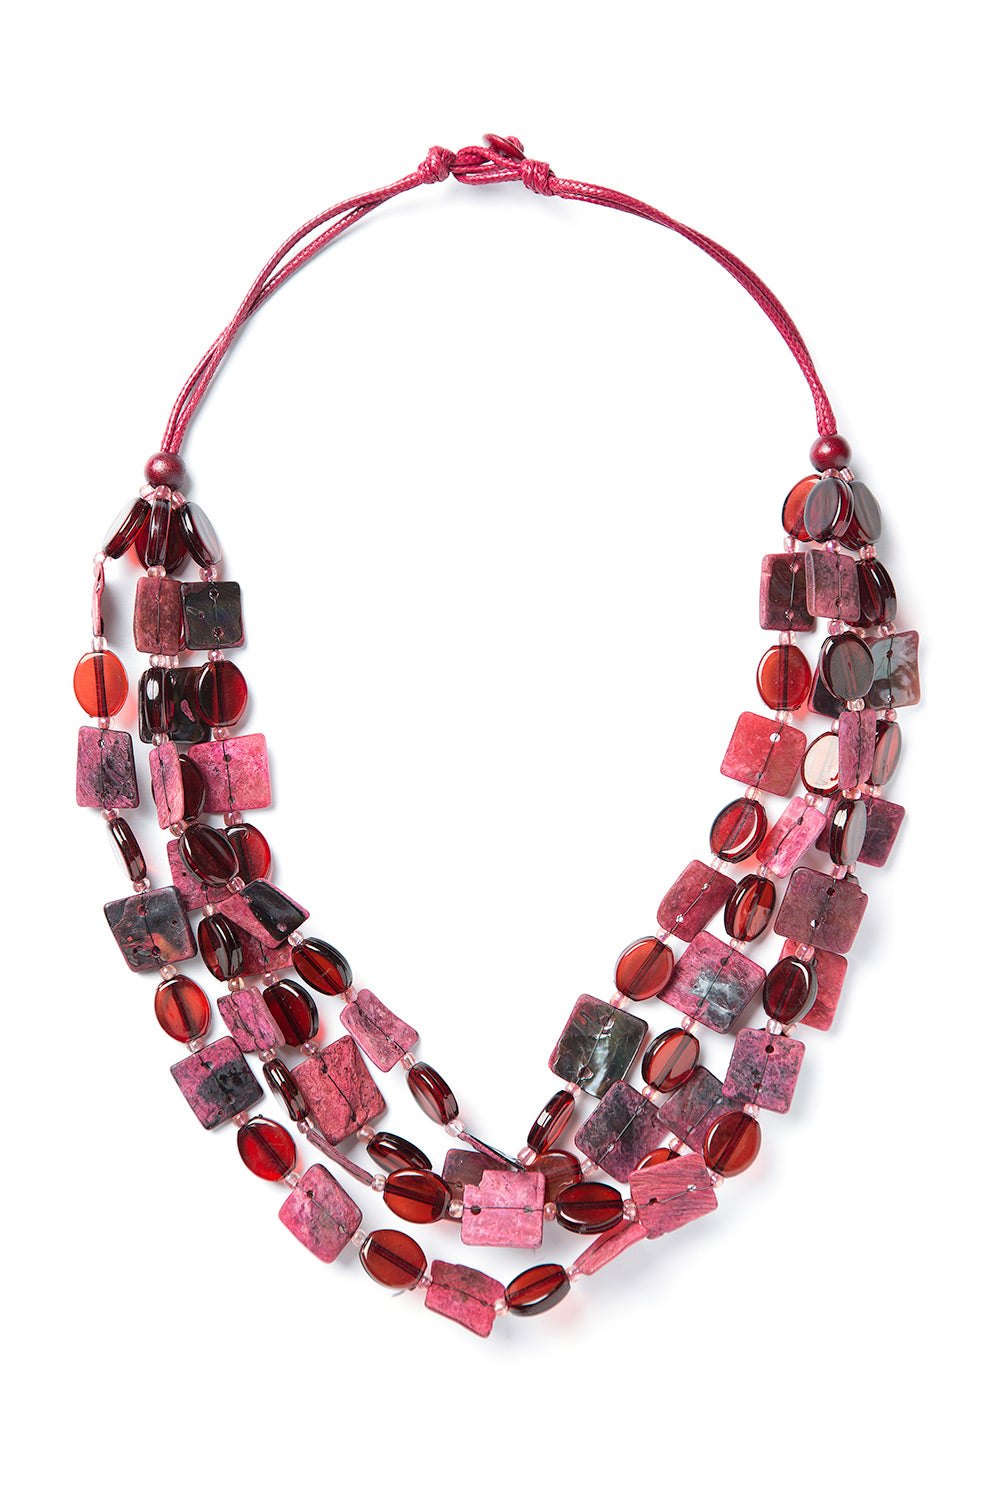 Type 3 Burgundy Resin Necklace